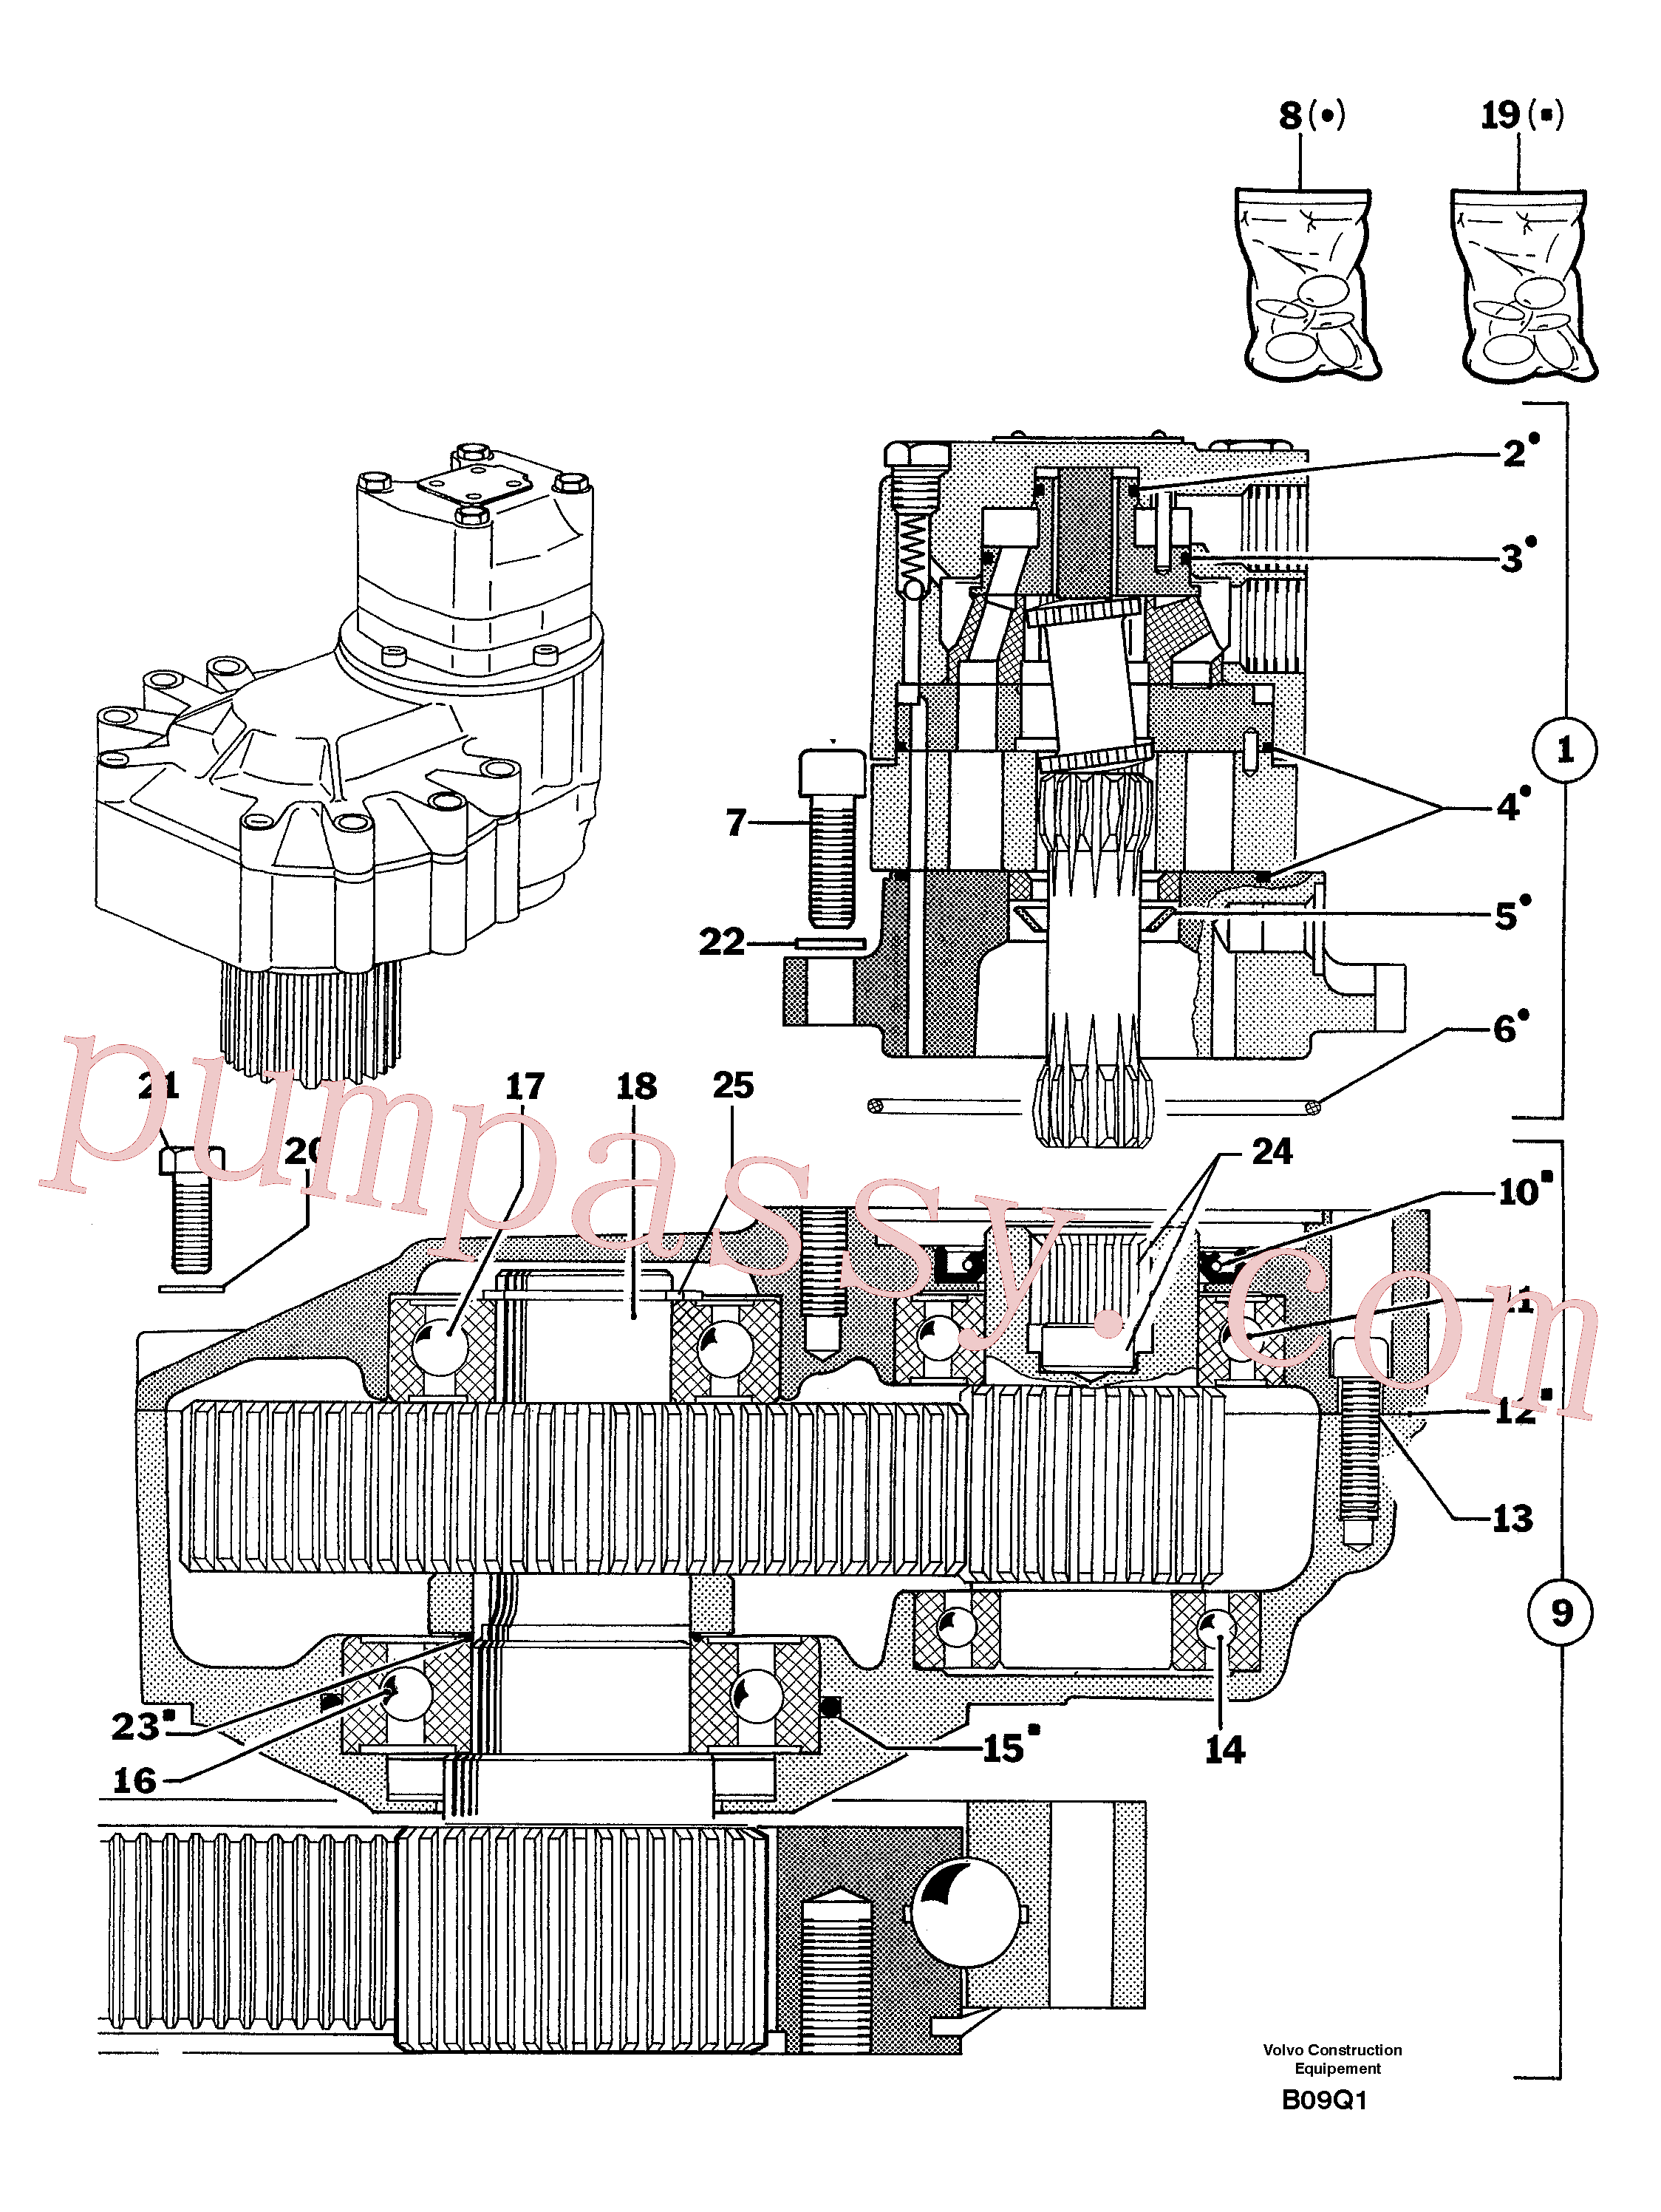 PJ4040021 for Volvo Slewing gear motor(B09Q1 assembly)